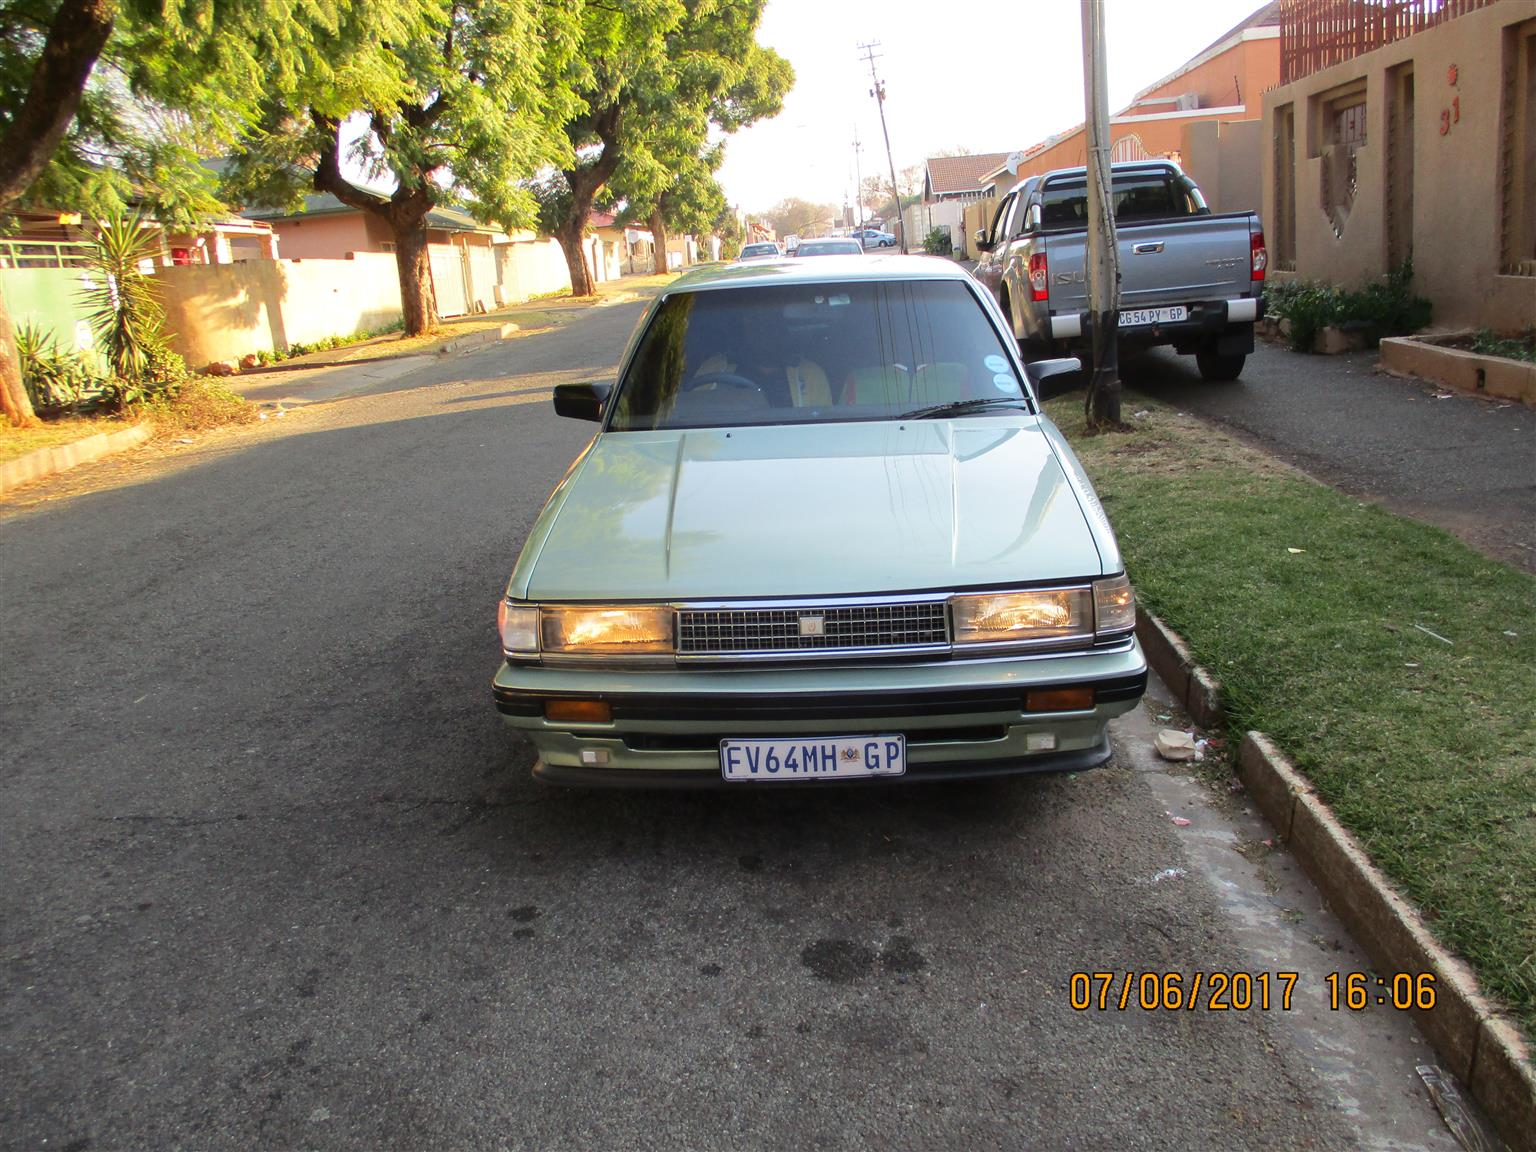 Toyota Cressida For Sale In Gauteng >> Toyota Cressida GLI-6 Fuel Injection | Junk Mail